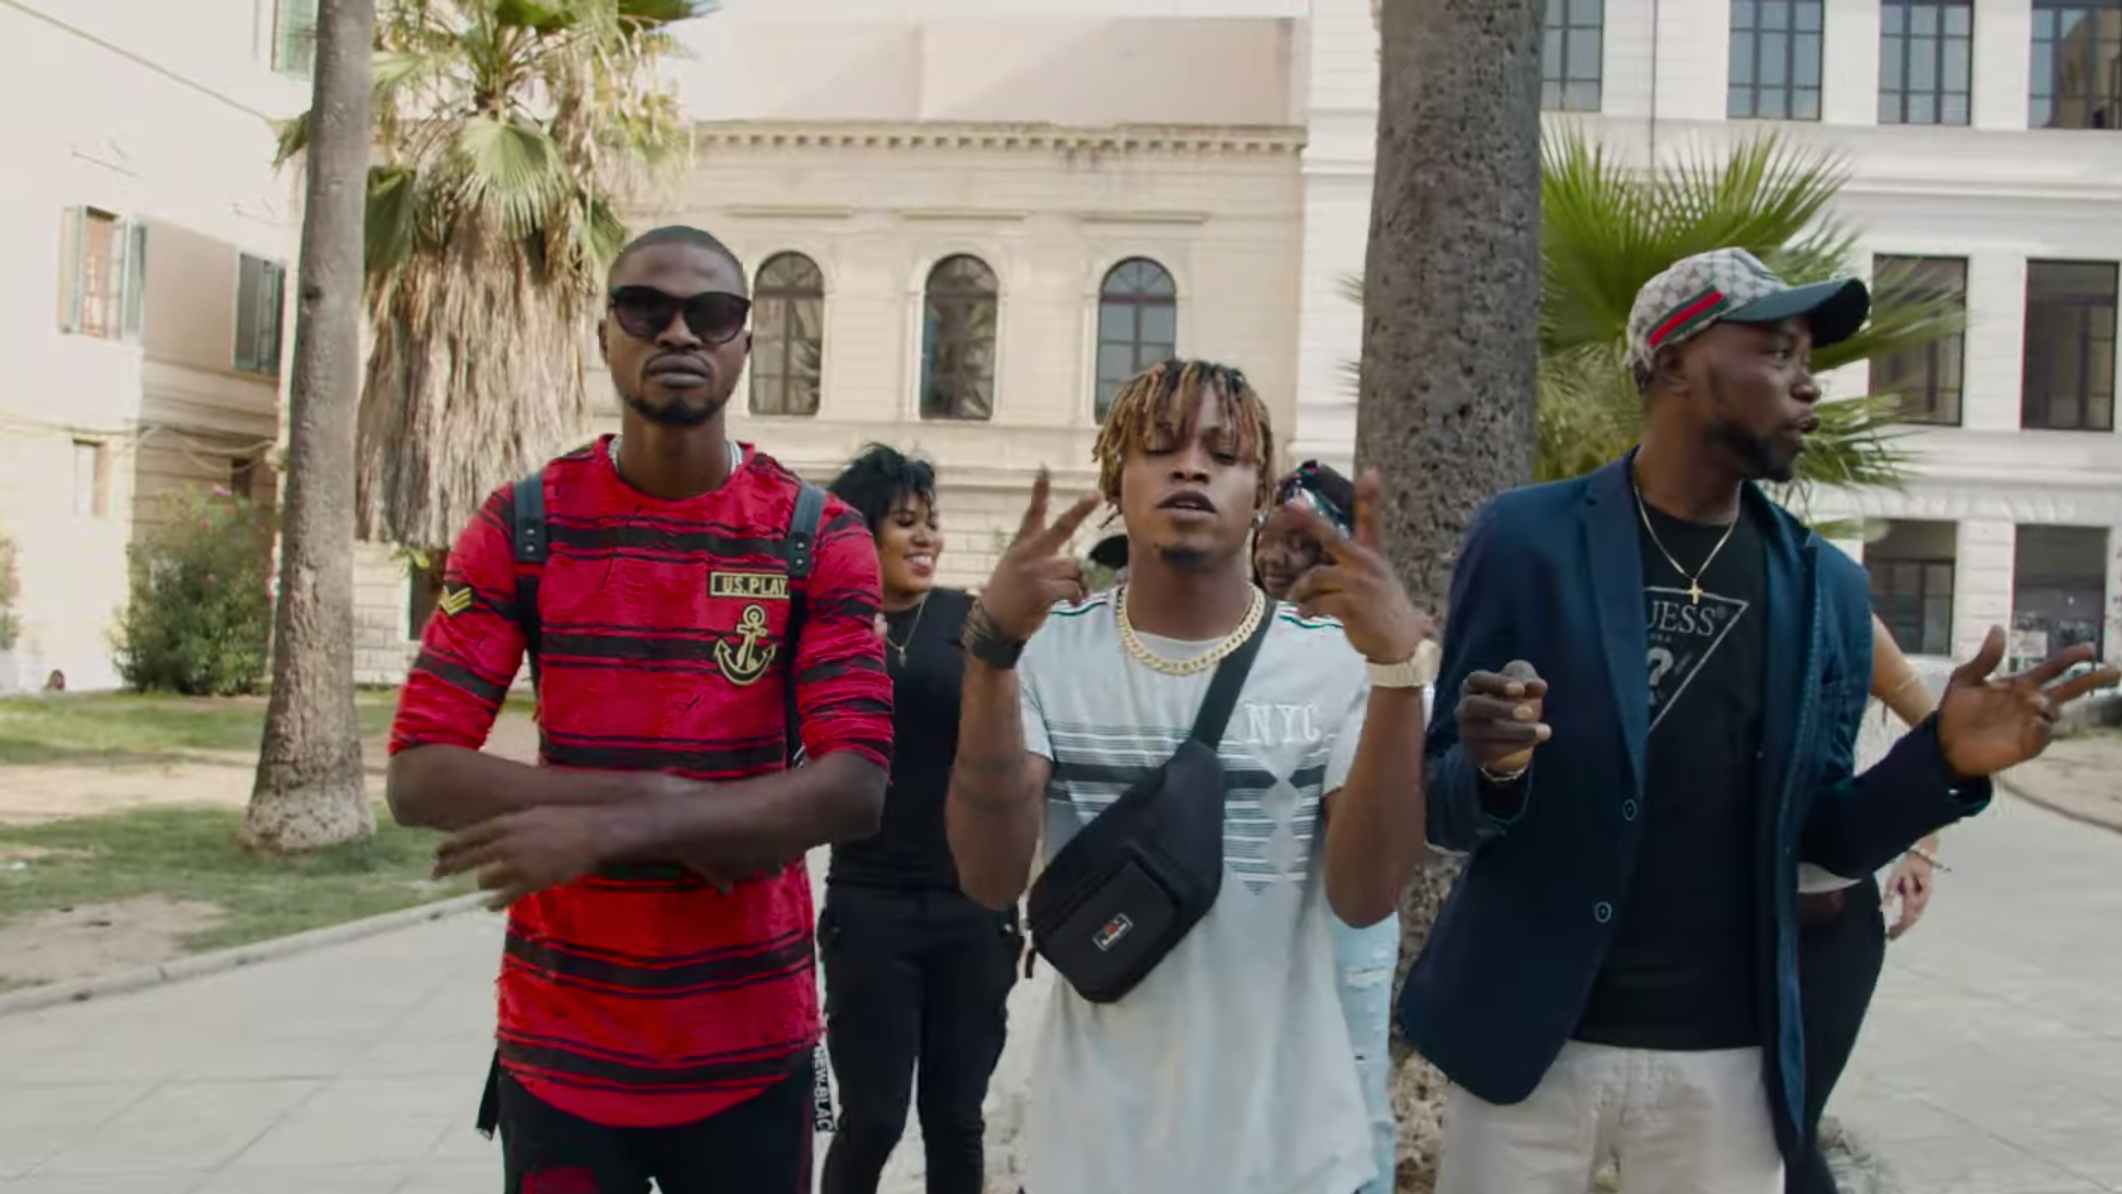 Nigerian migrants in Sicily are building a buzzing Afrobeats scene from scratch